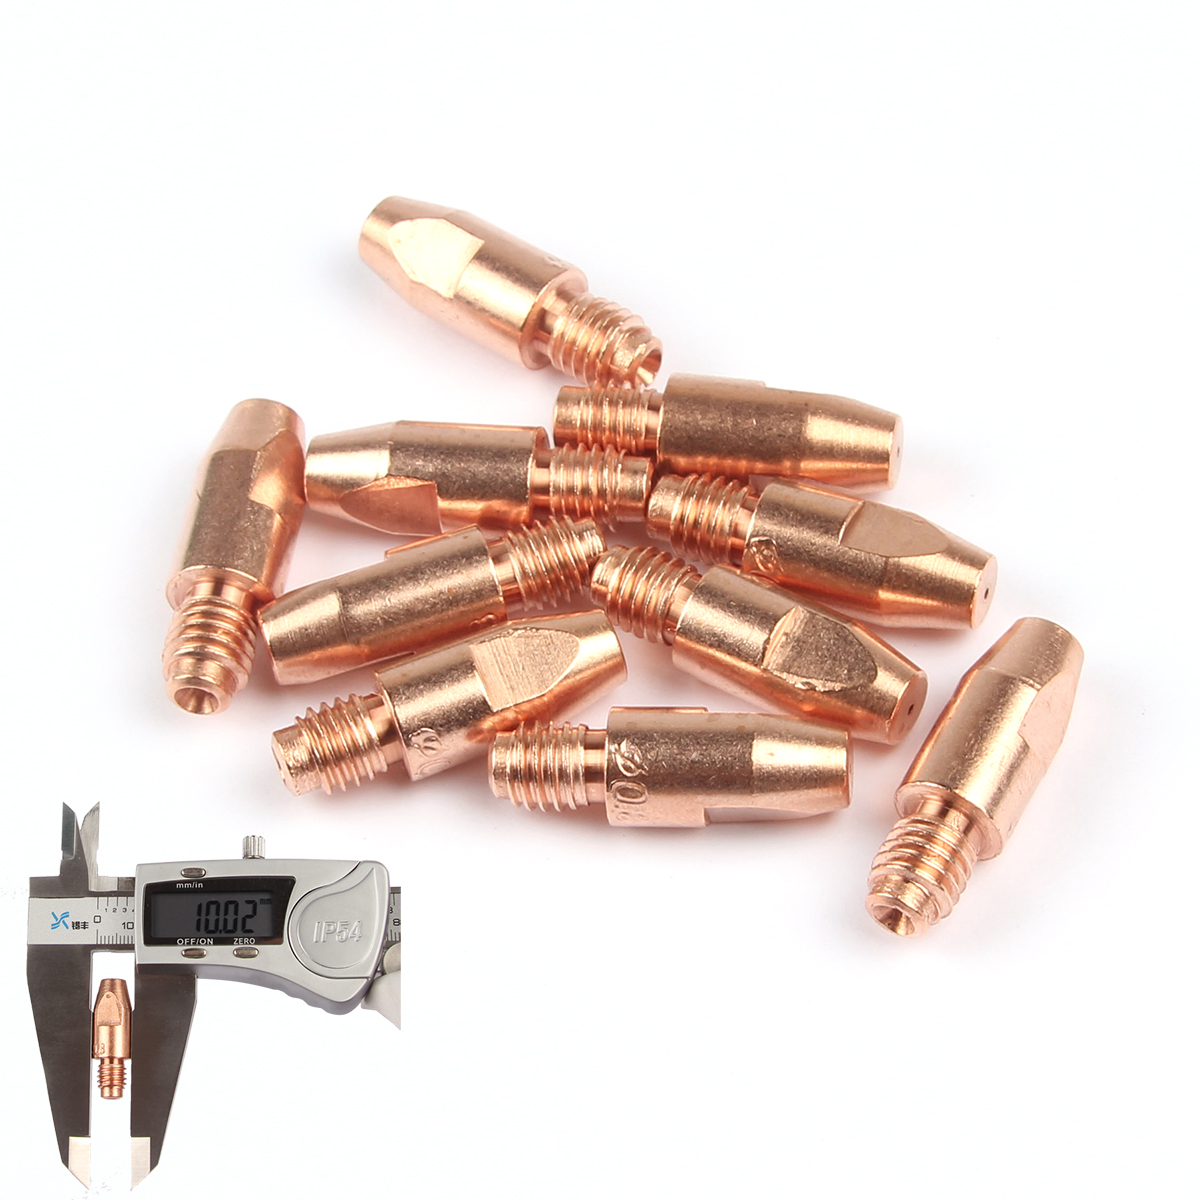 10Pcs MB 36KD Contact Tips Consumables M8*30mm 0.8/1.0/1.2mm Holder Torch Gun Nozzle MIG/MAG Co2/Gas Accessories Soldering Tool